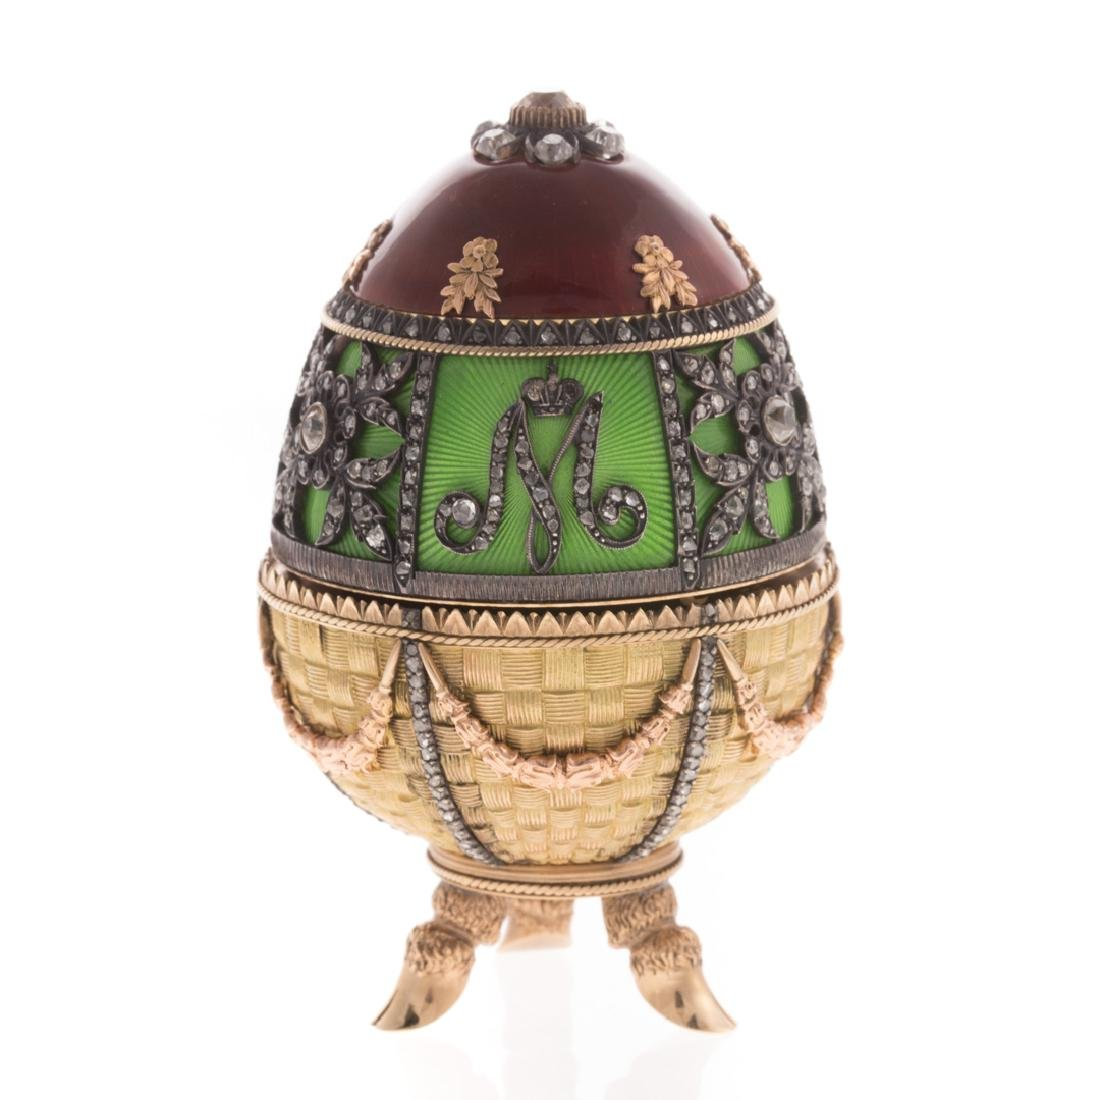 A Russian Enameled Gold Egg with Diamonds